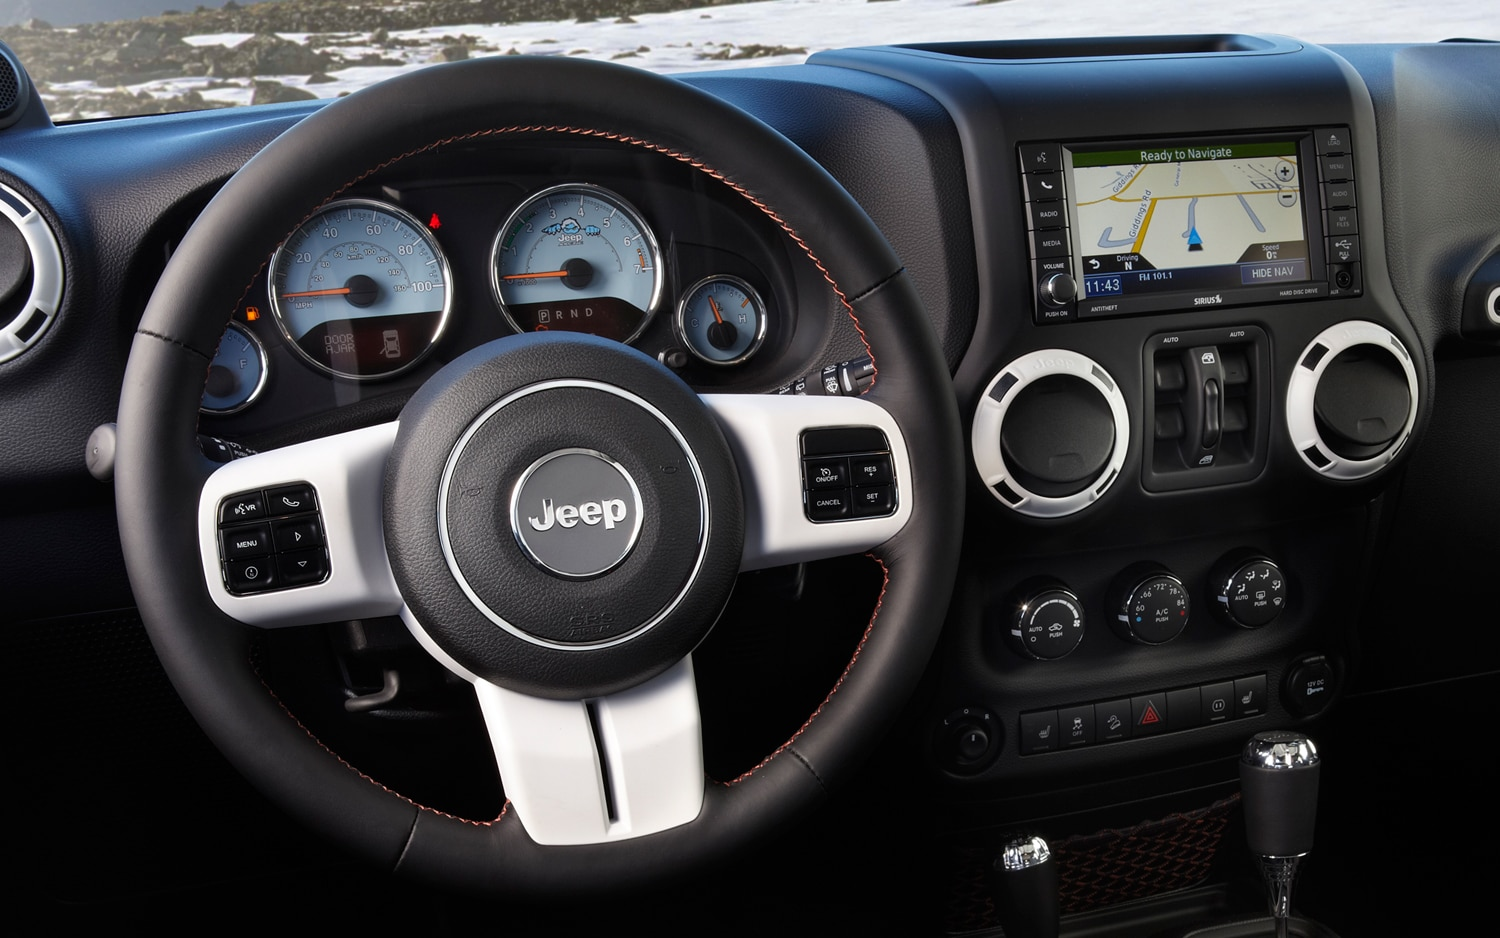 Jeep brings arctic edition package to u s spec 2012 wrangler liberty models for Jeep wrangler interior lighting